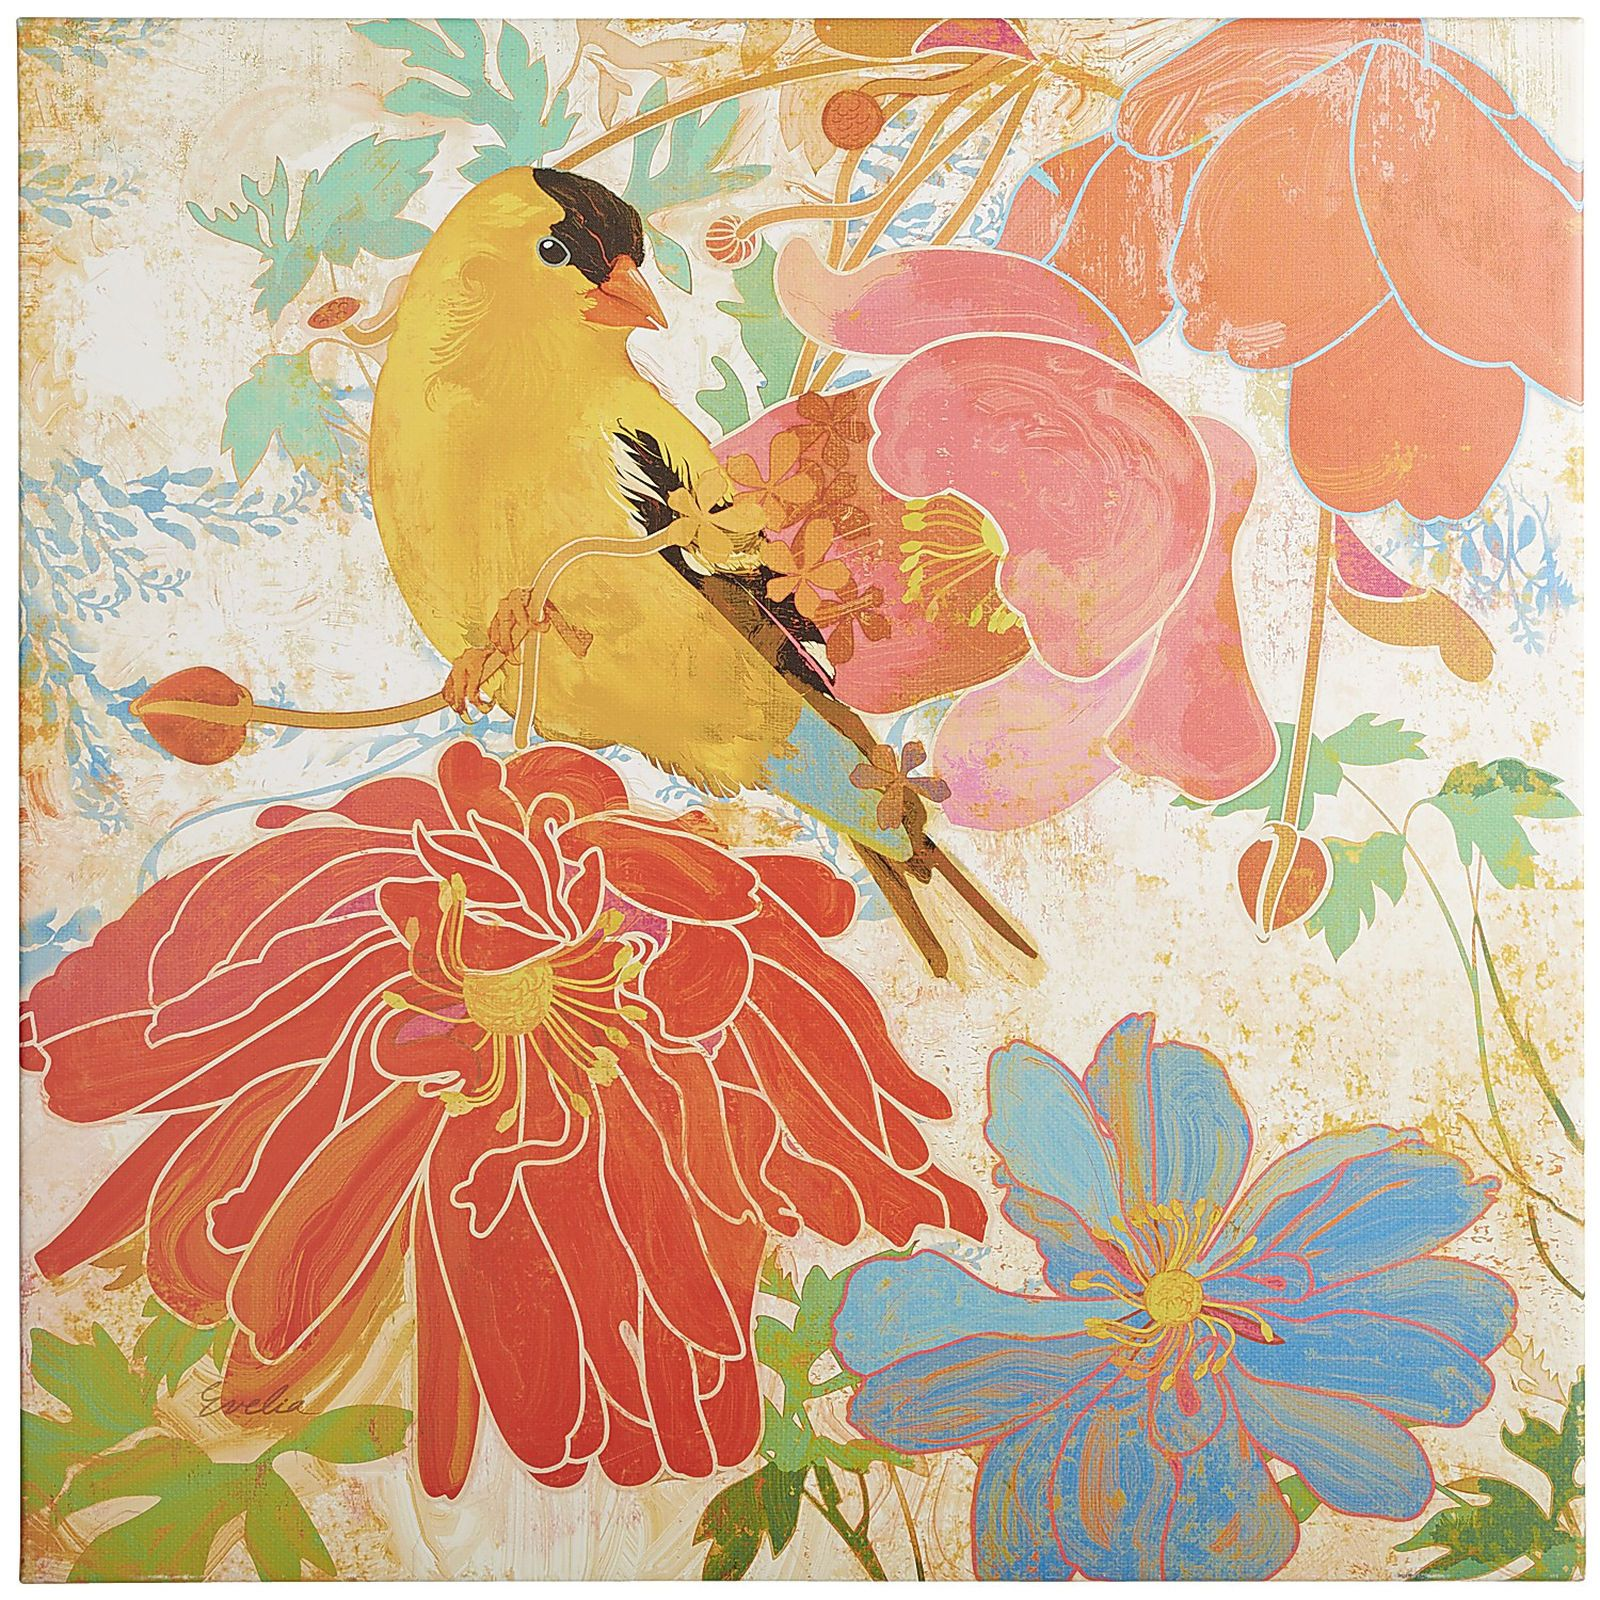 Perched among brightly colored blooms, our yellow bird blends in beautifully. Of course, against a neutral wall or mantel, our vibrant print really pops. And it's crafted with UV-protected fabric, so this lively scene can flourish indoors or out.